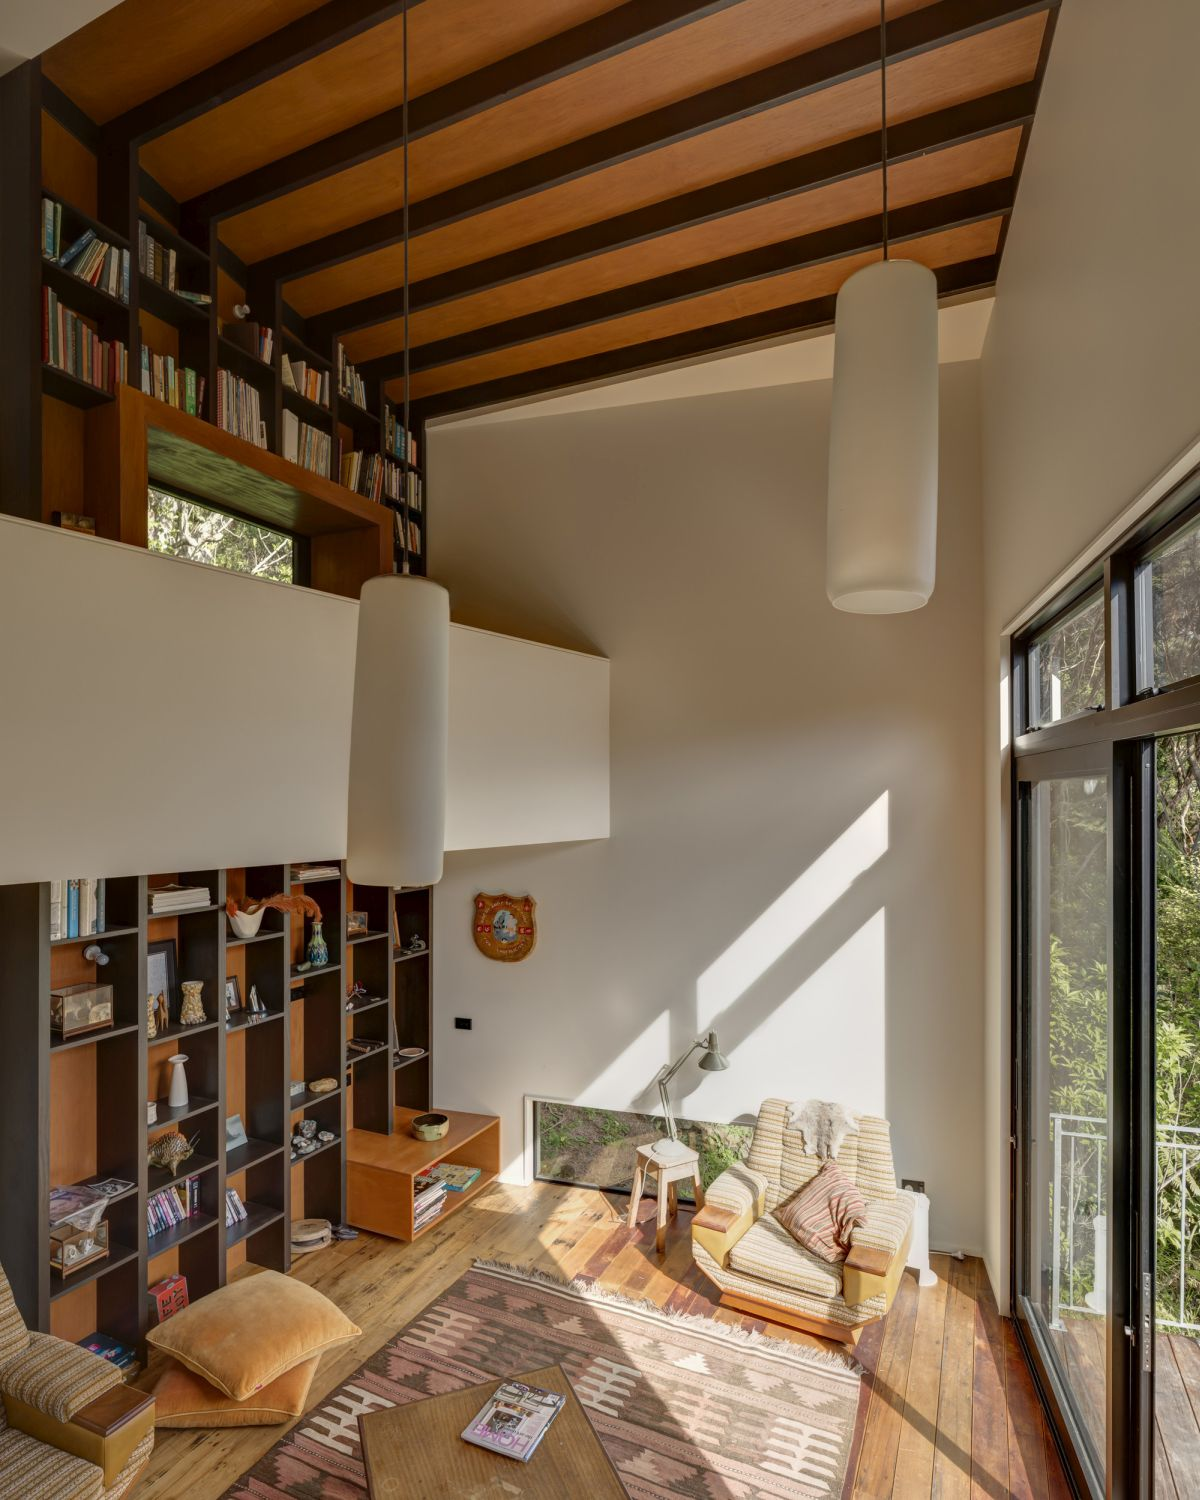 A tall wooden bookcase extends all the way up to the ceiling, emphasizing the height of the room